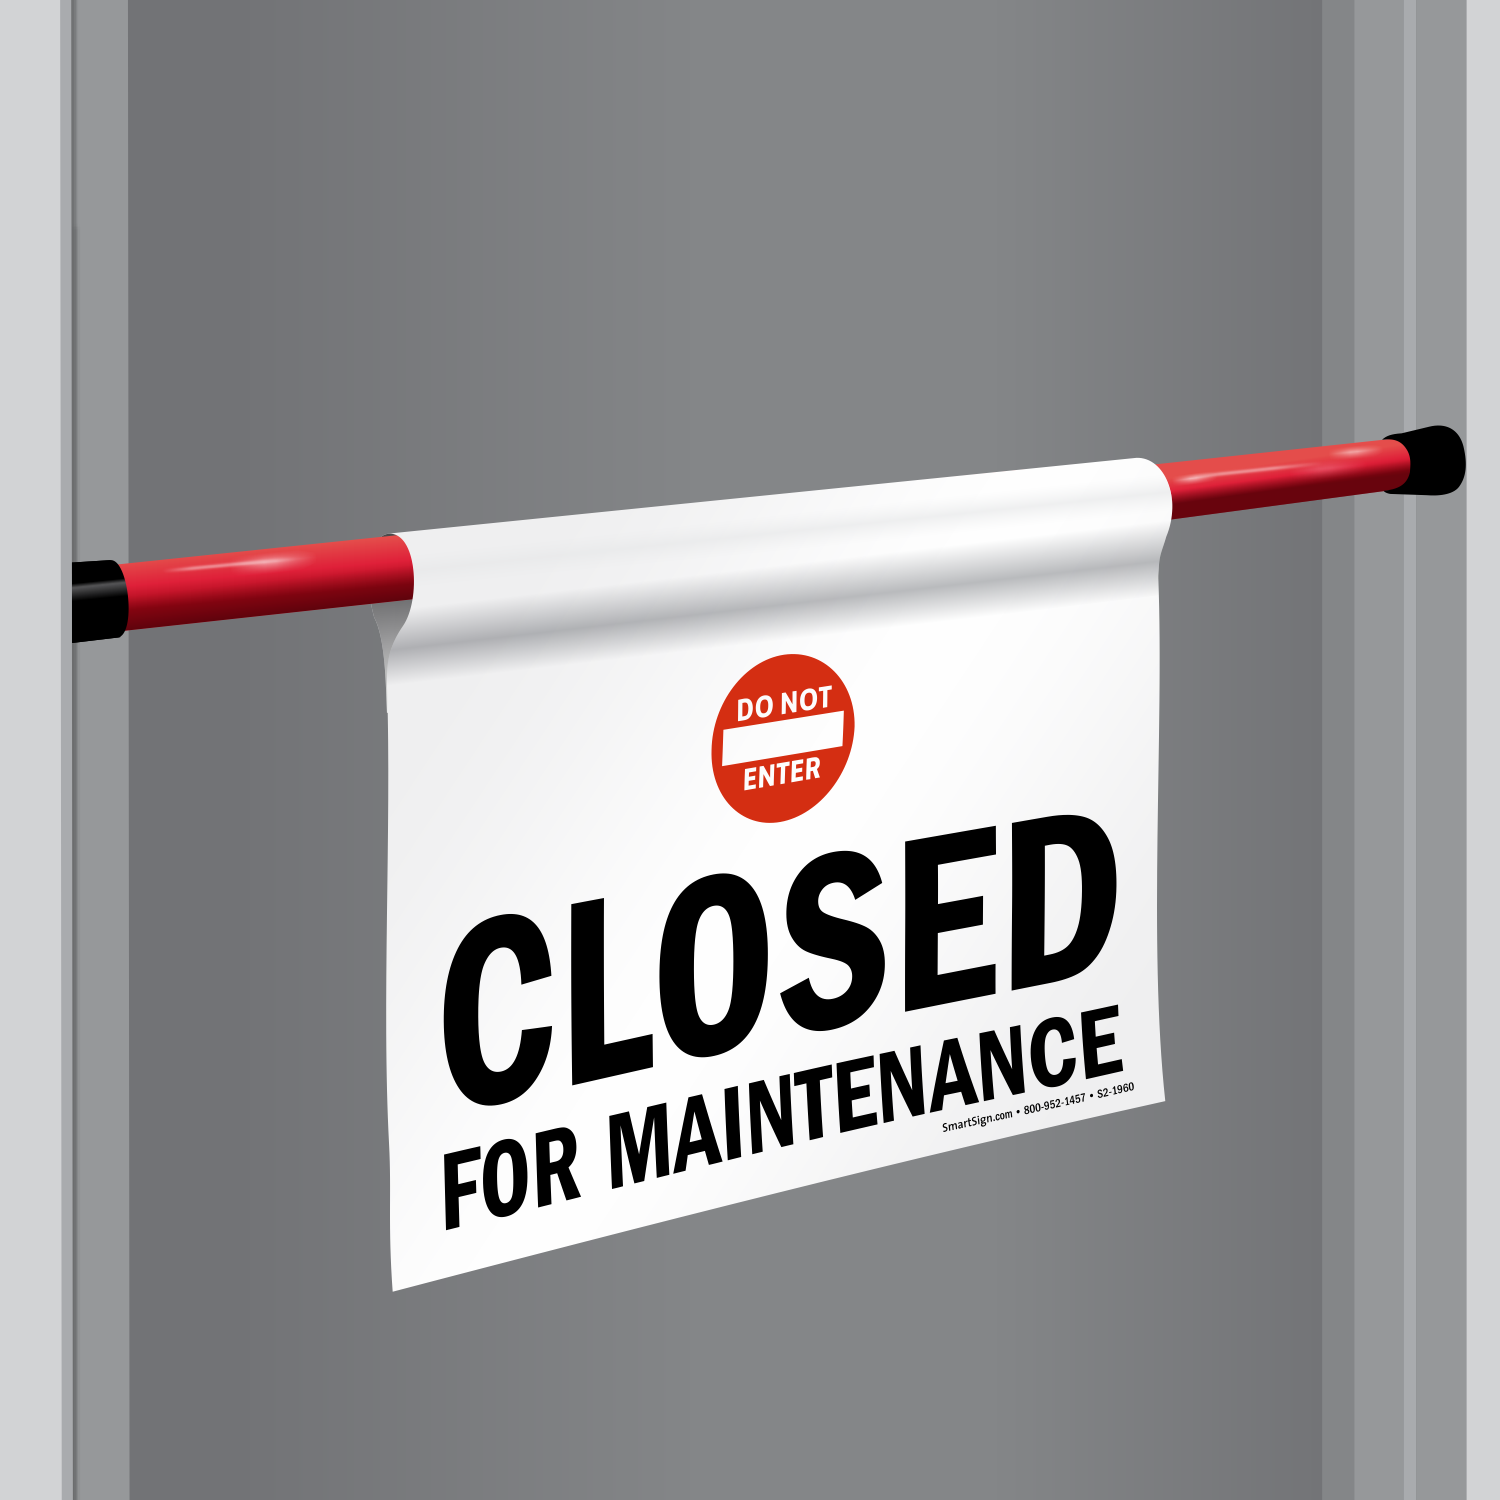 Door Barricade Sign Do Not Enter - Closed For Maintenance (S2-1960) & Closed For Maintenance Door Barricade Sign SKU: S2-1960